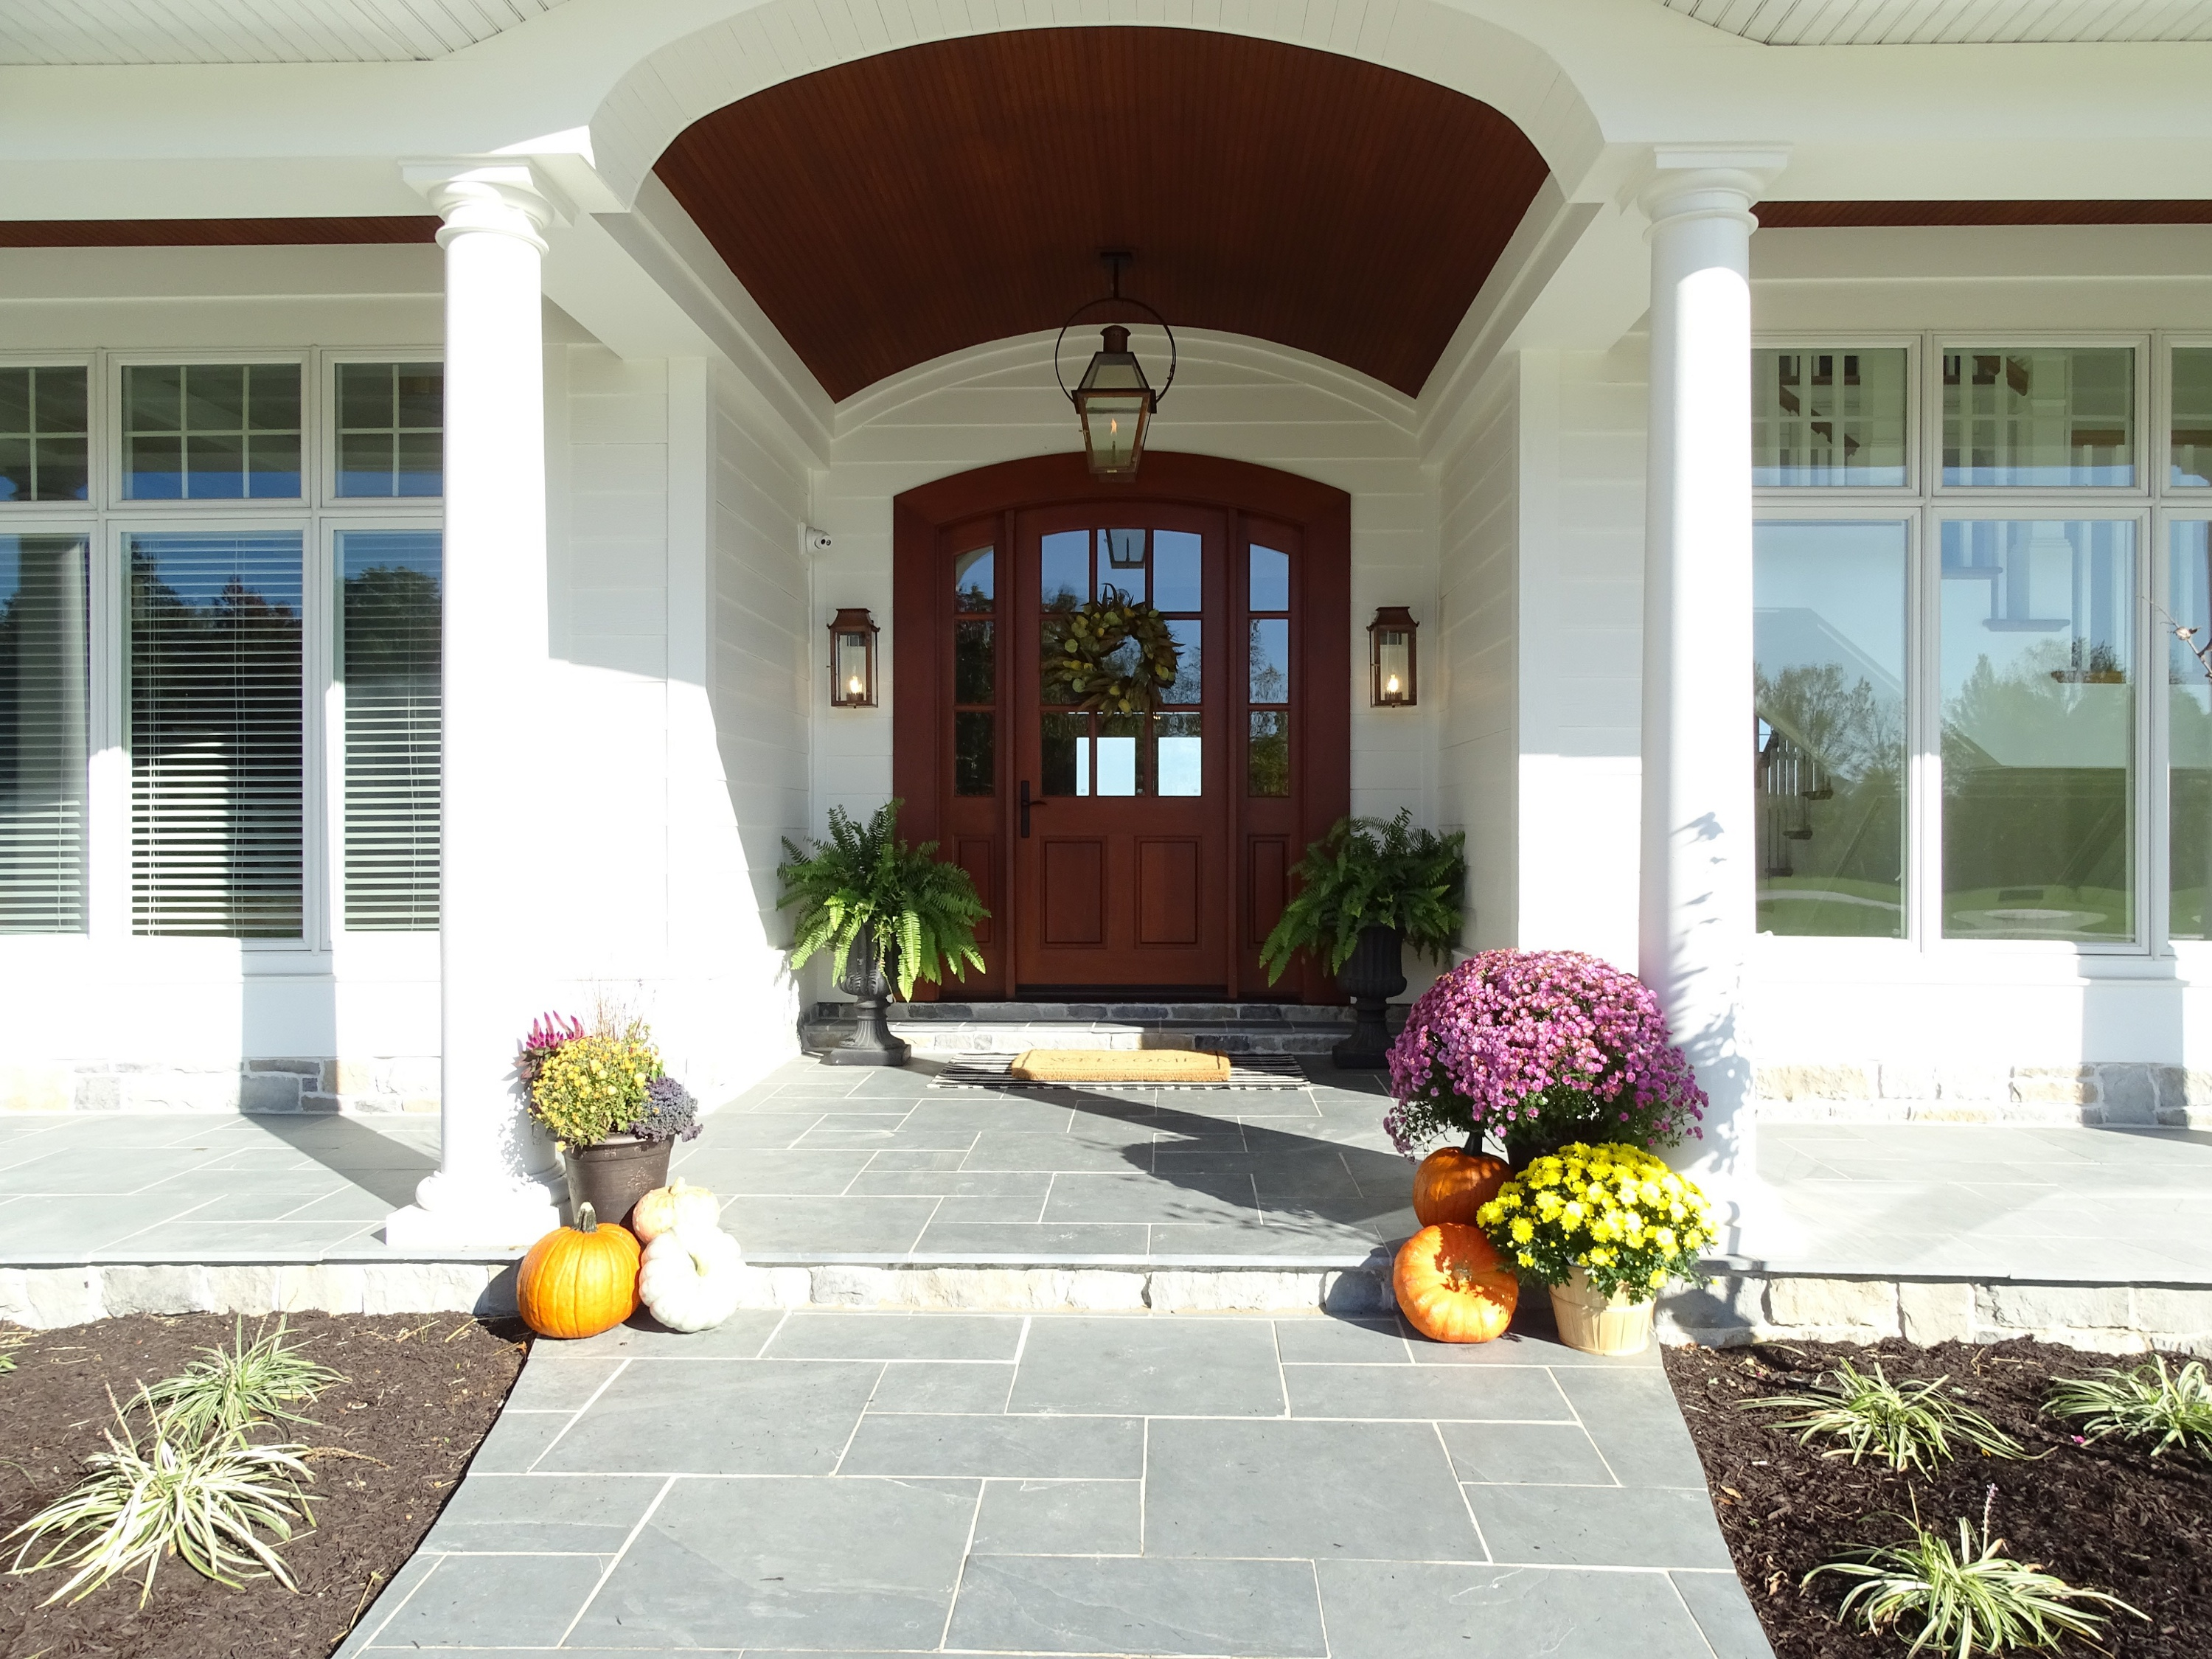 Entry way to new home